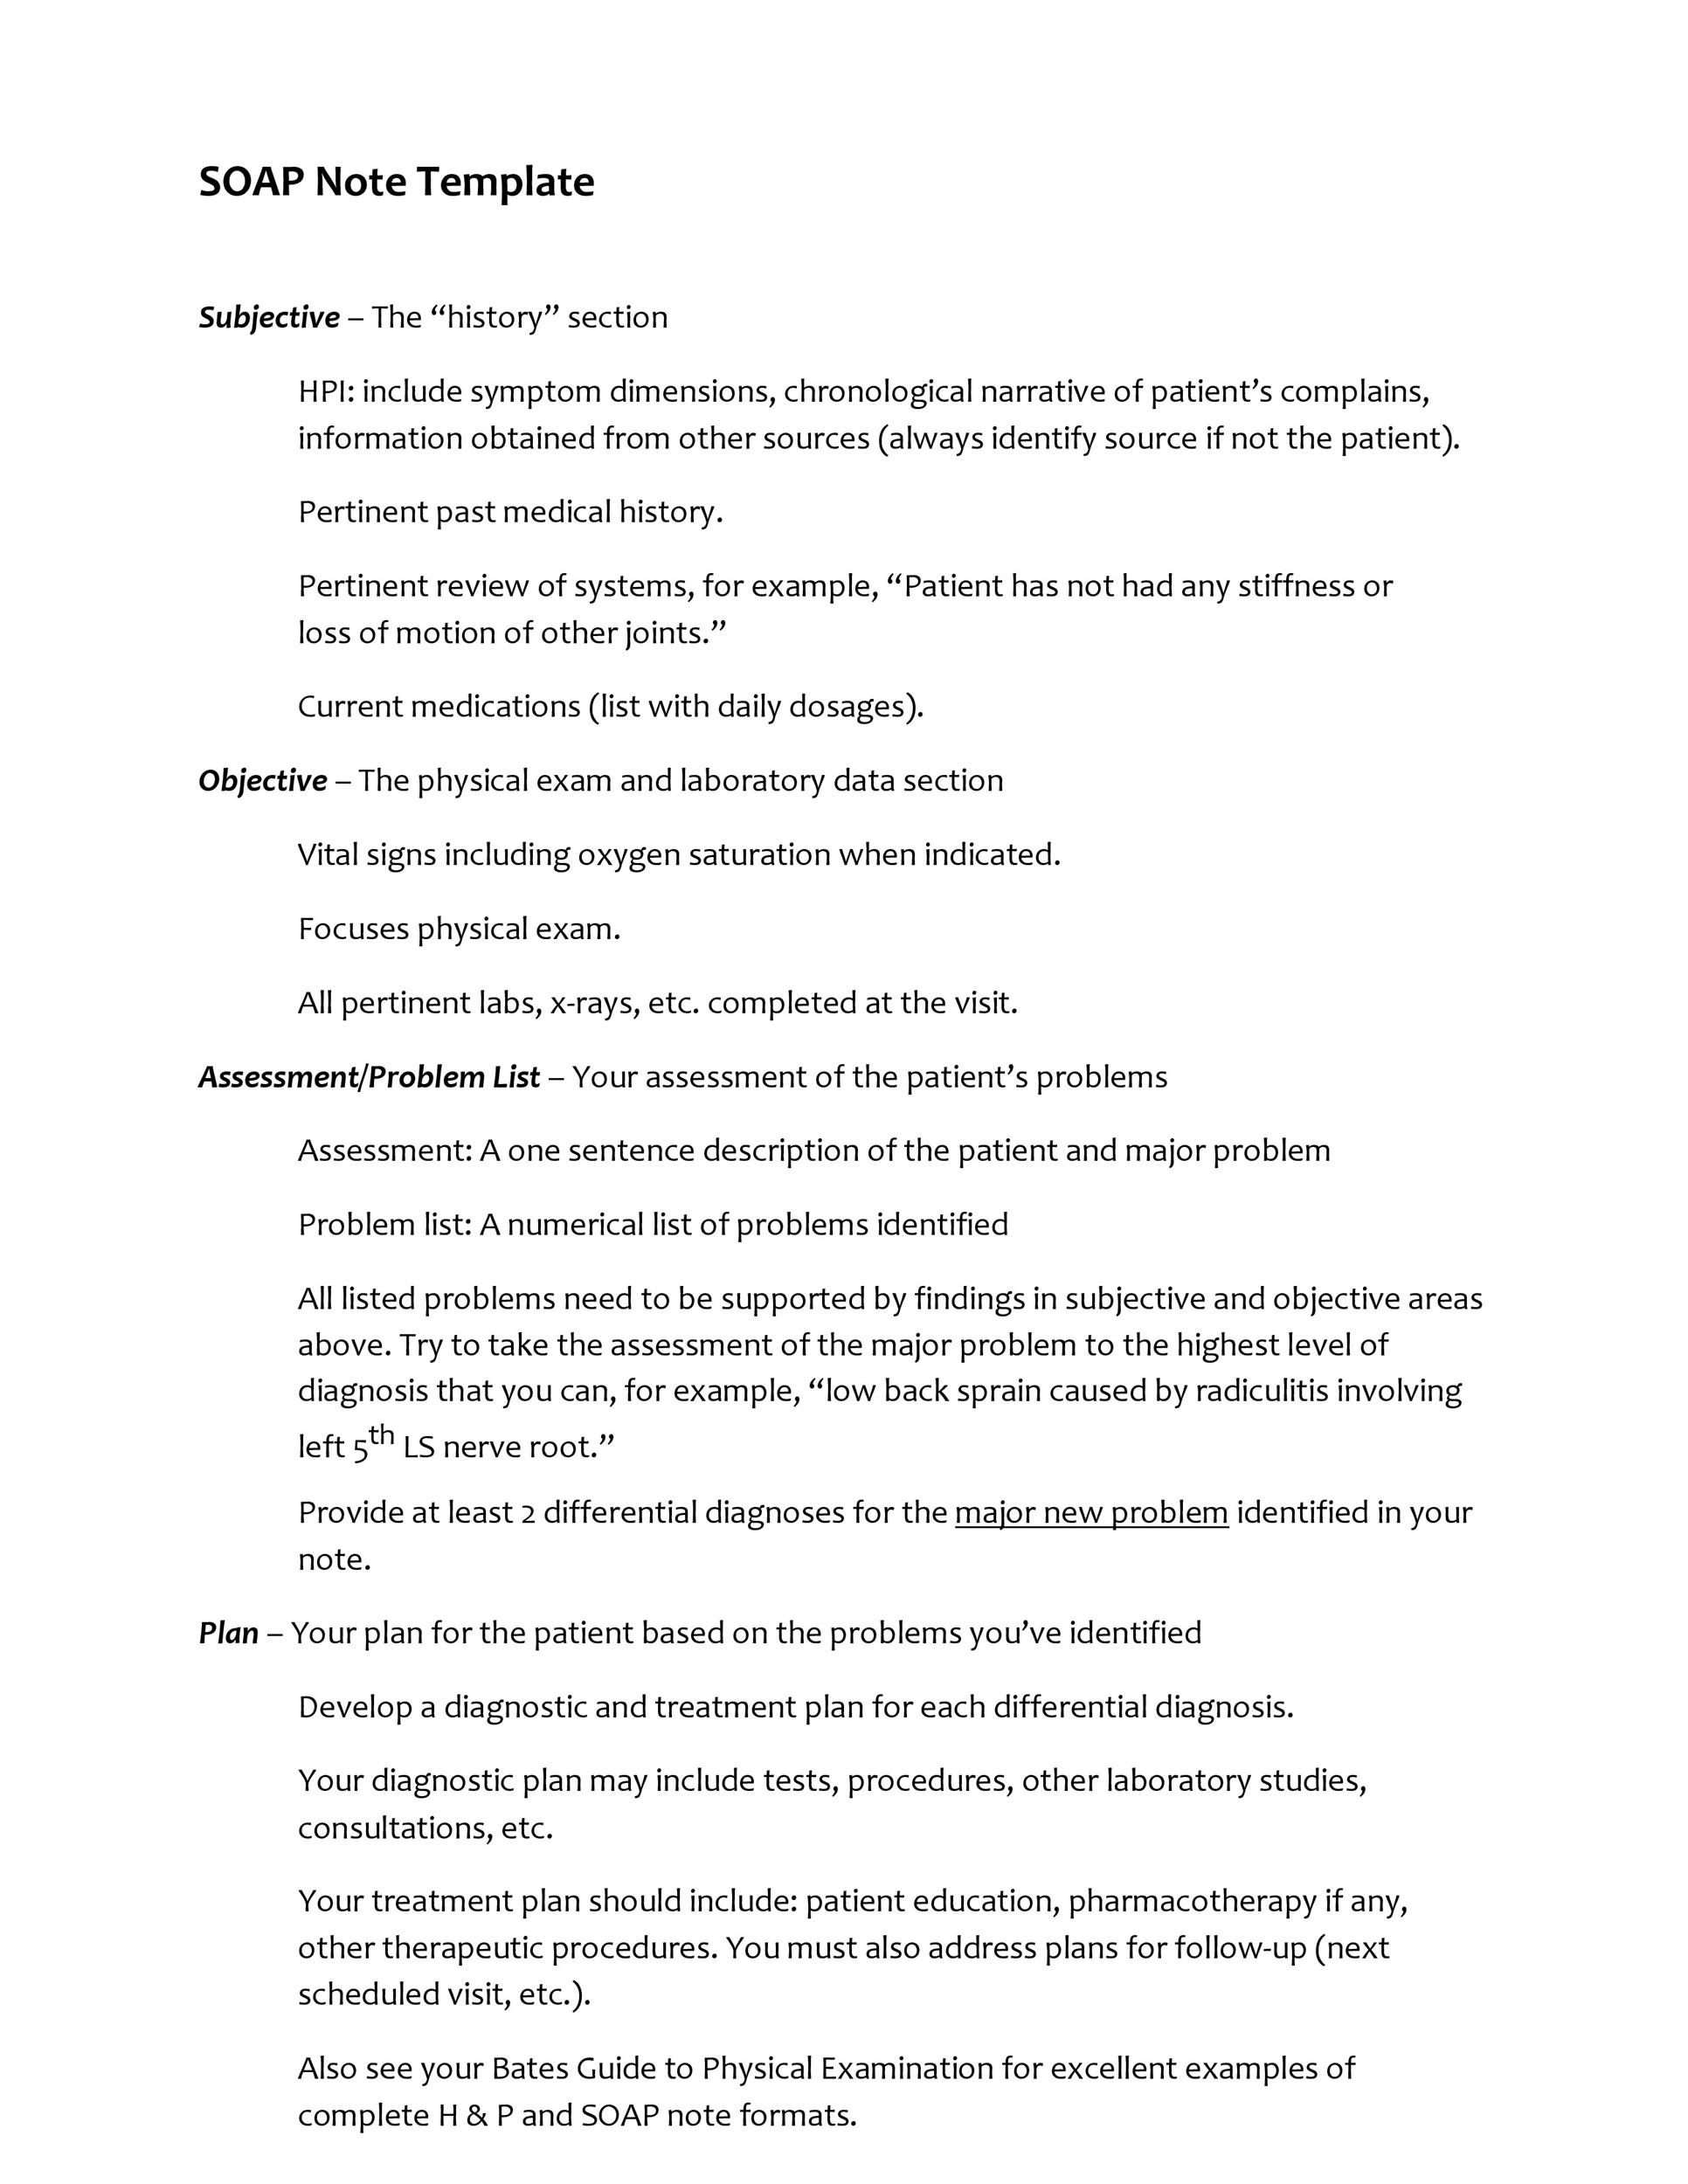 soap documentation template - cool comprehensive physical exam template photos example